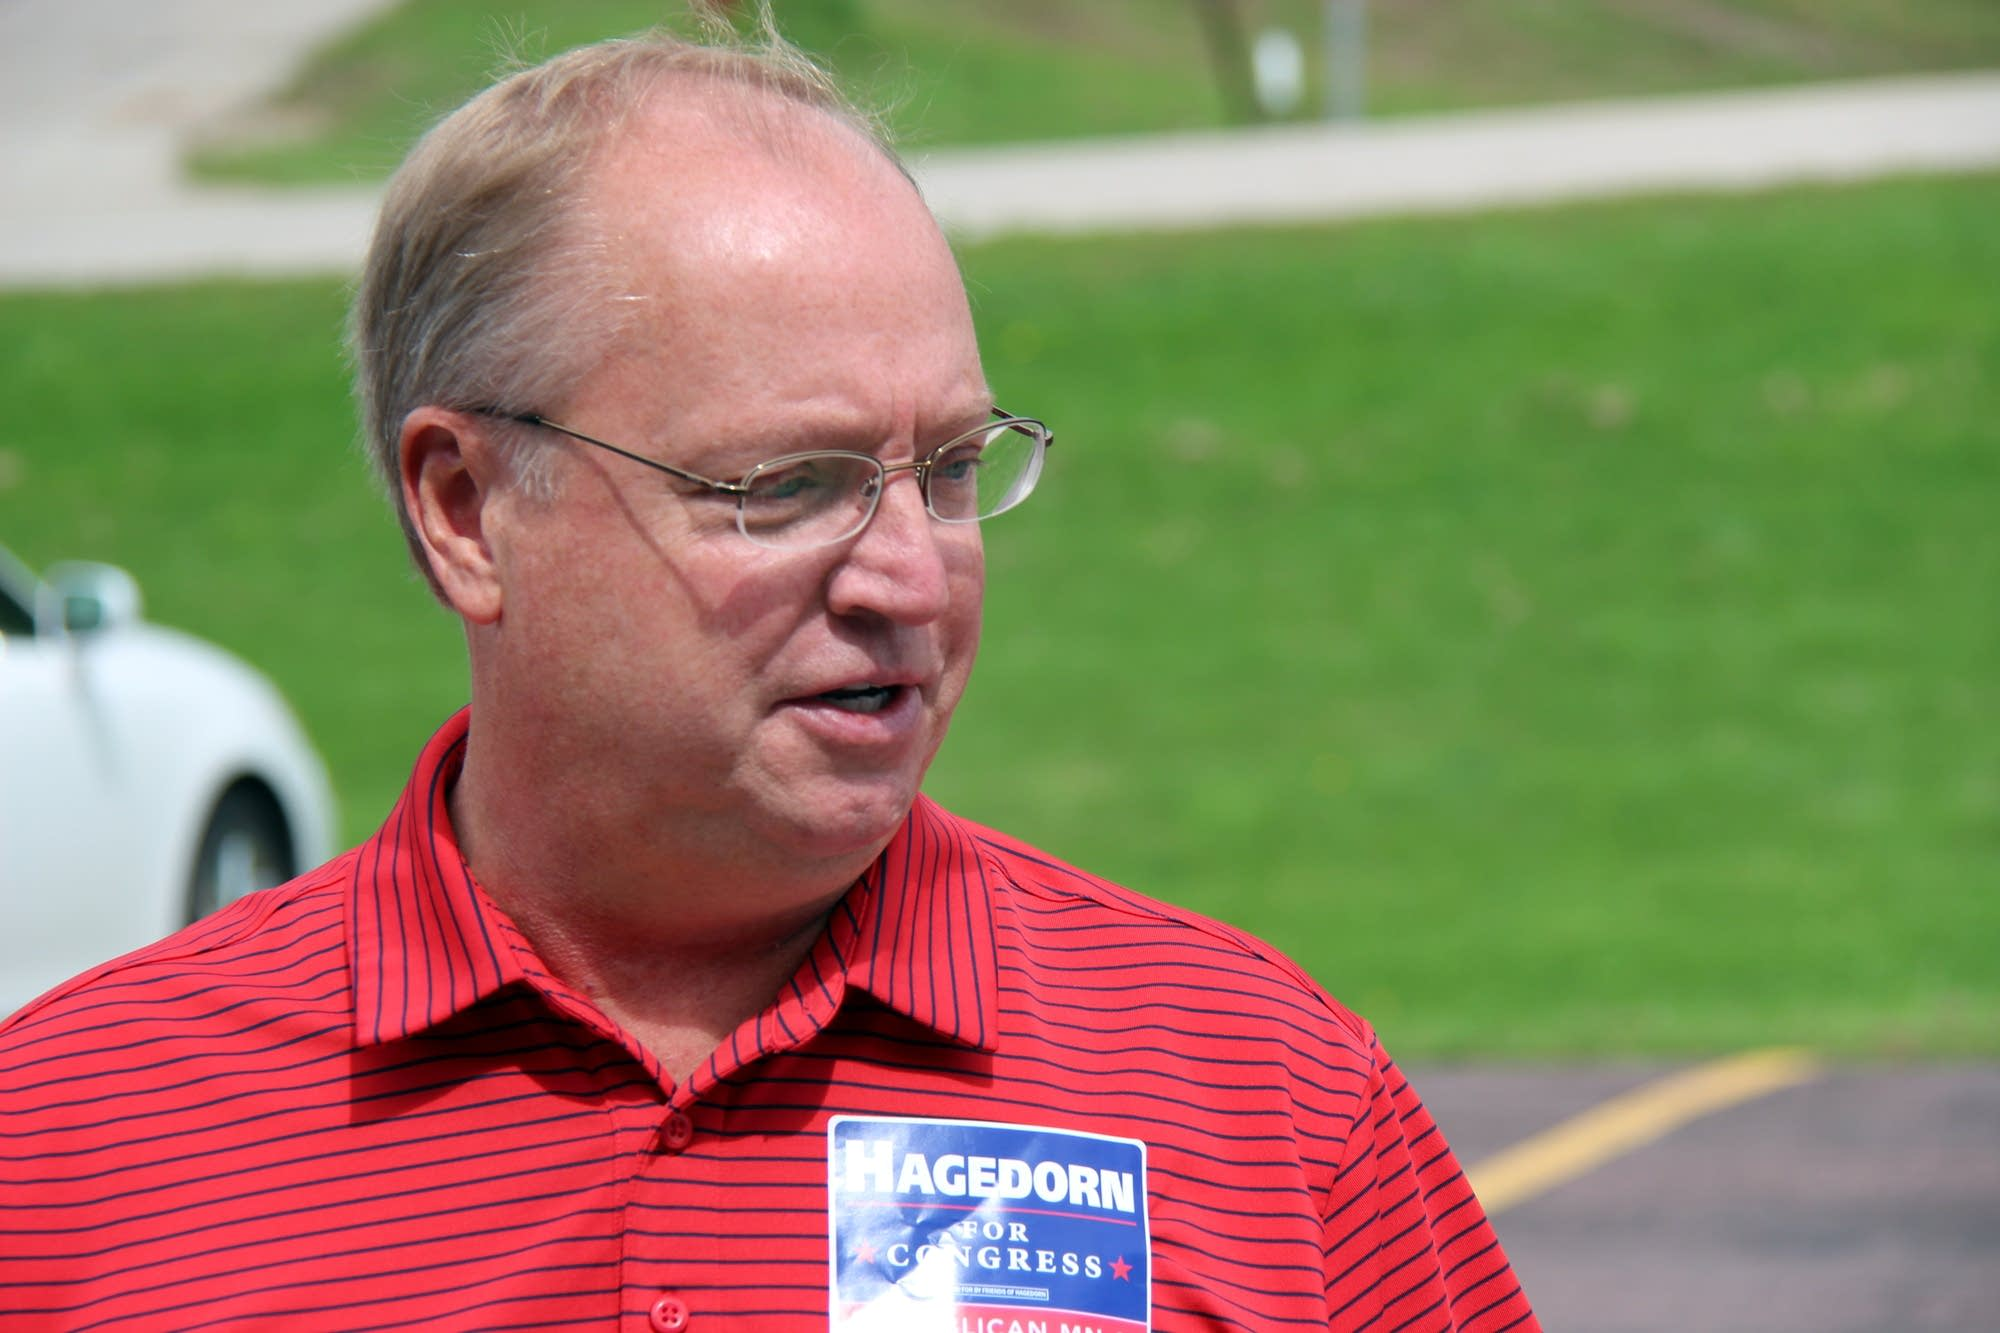 Hagedorn hopes he can win his third bid for Congress .